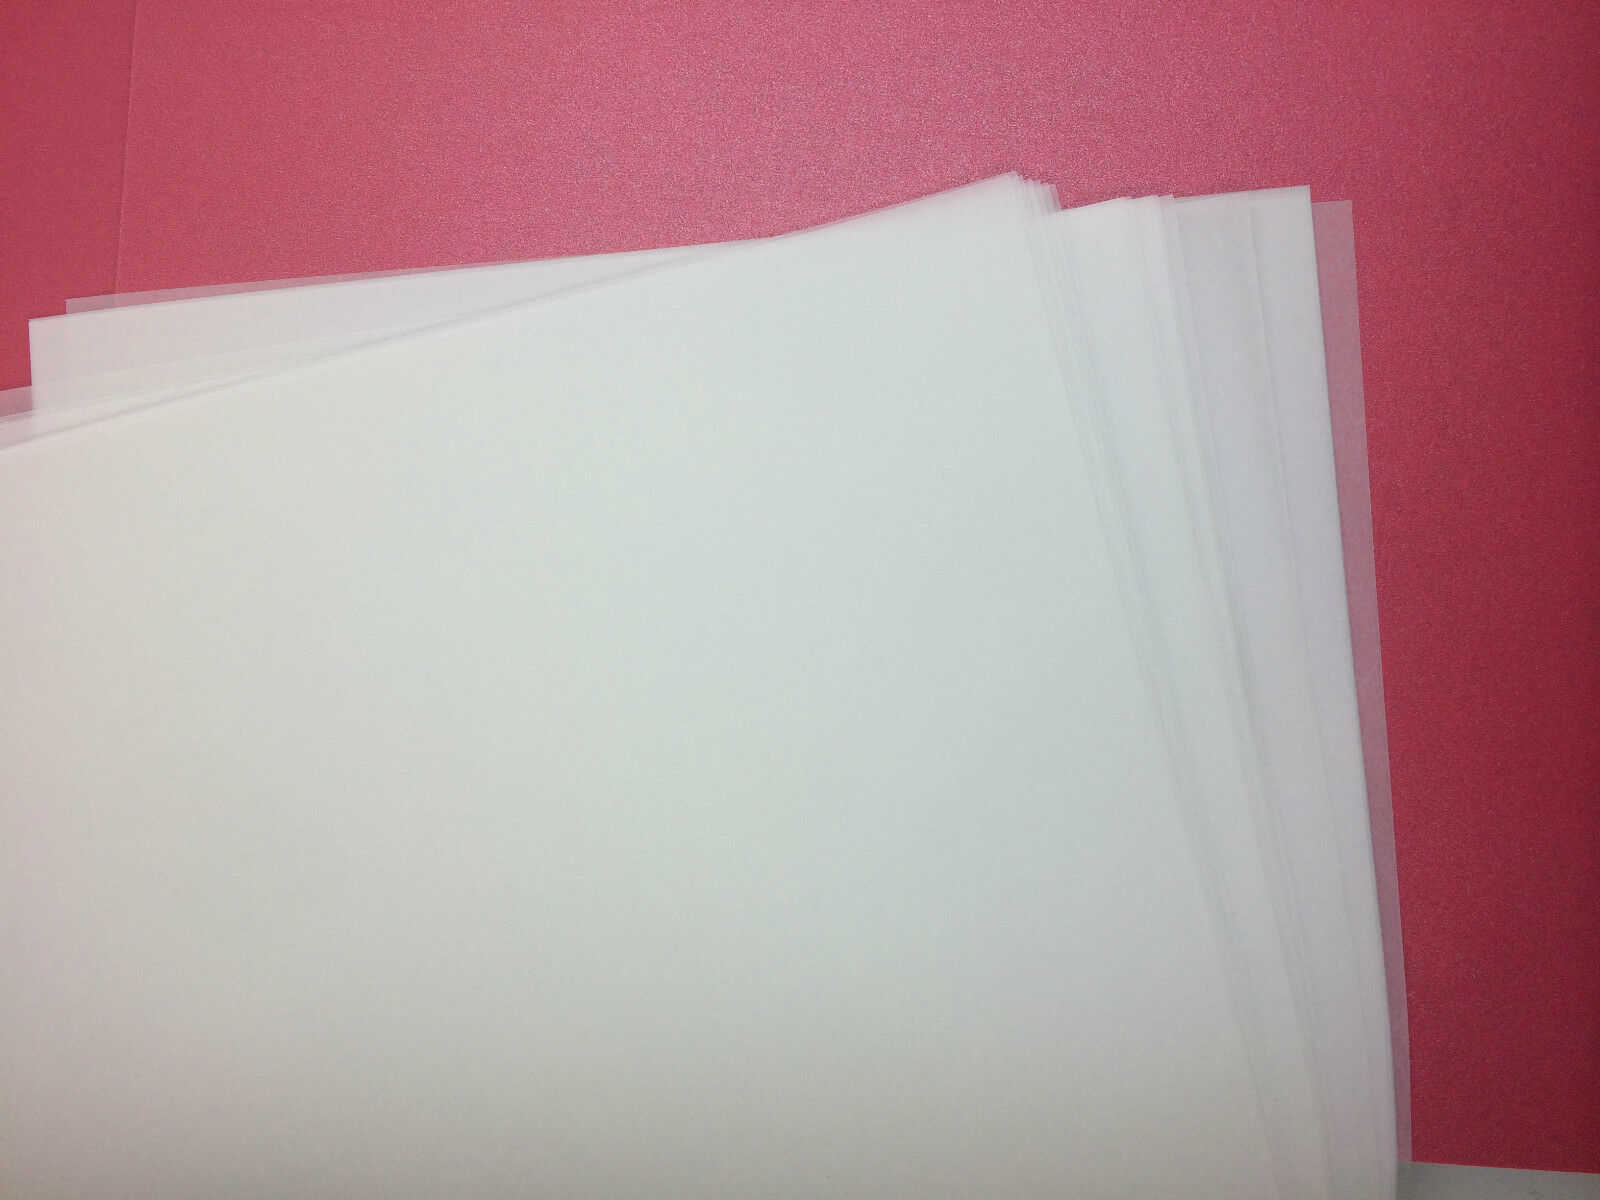 100 X Vellum Translucent Paper A4 For Scrapbooking Wedding